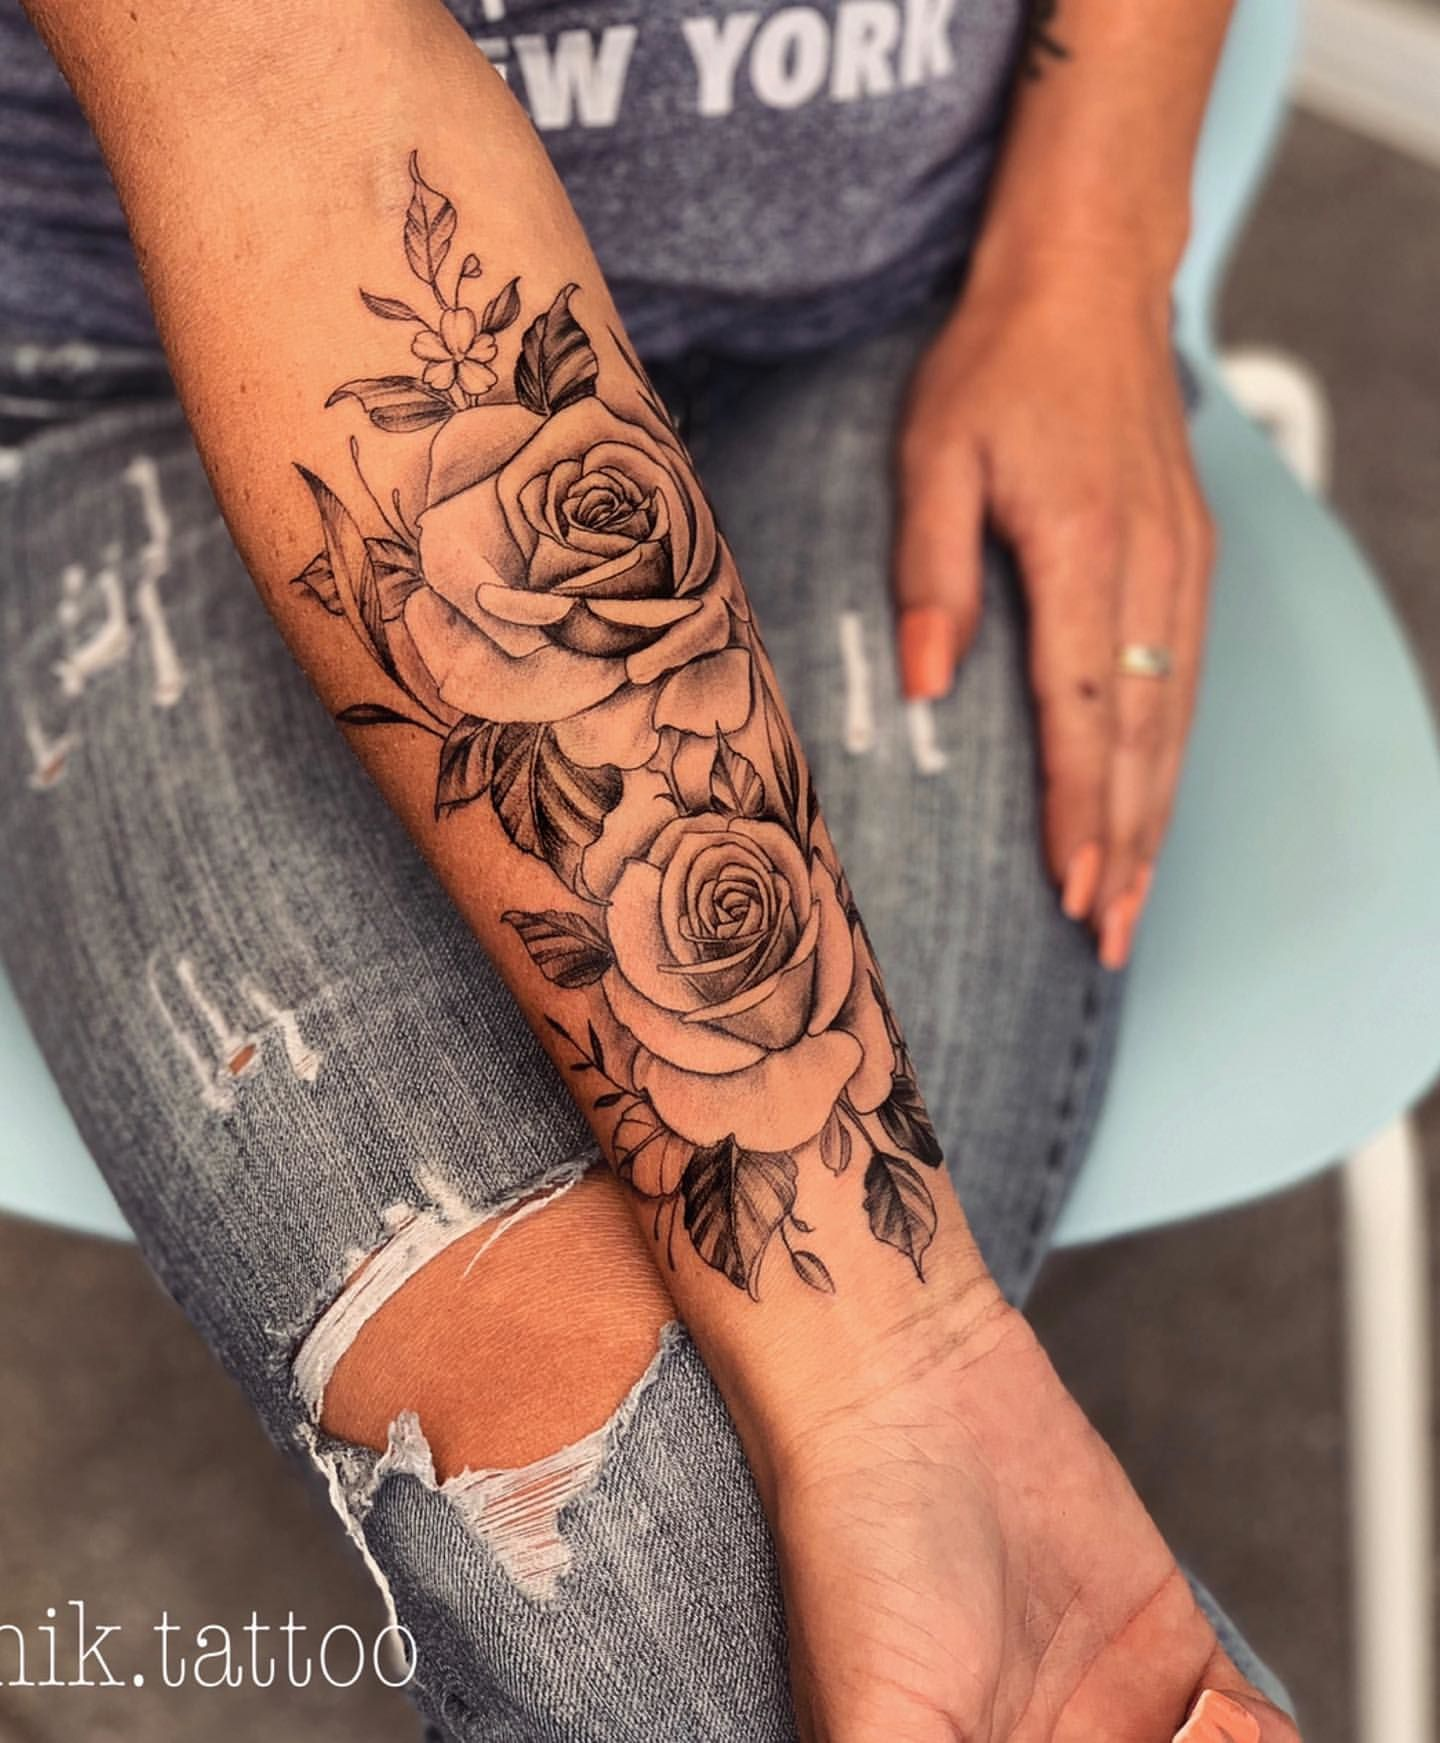 100+ The Most Beautiful Flower Tattoo Designs,  #Beautiful #Designs #Flower #rosetattoosleeve…